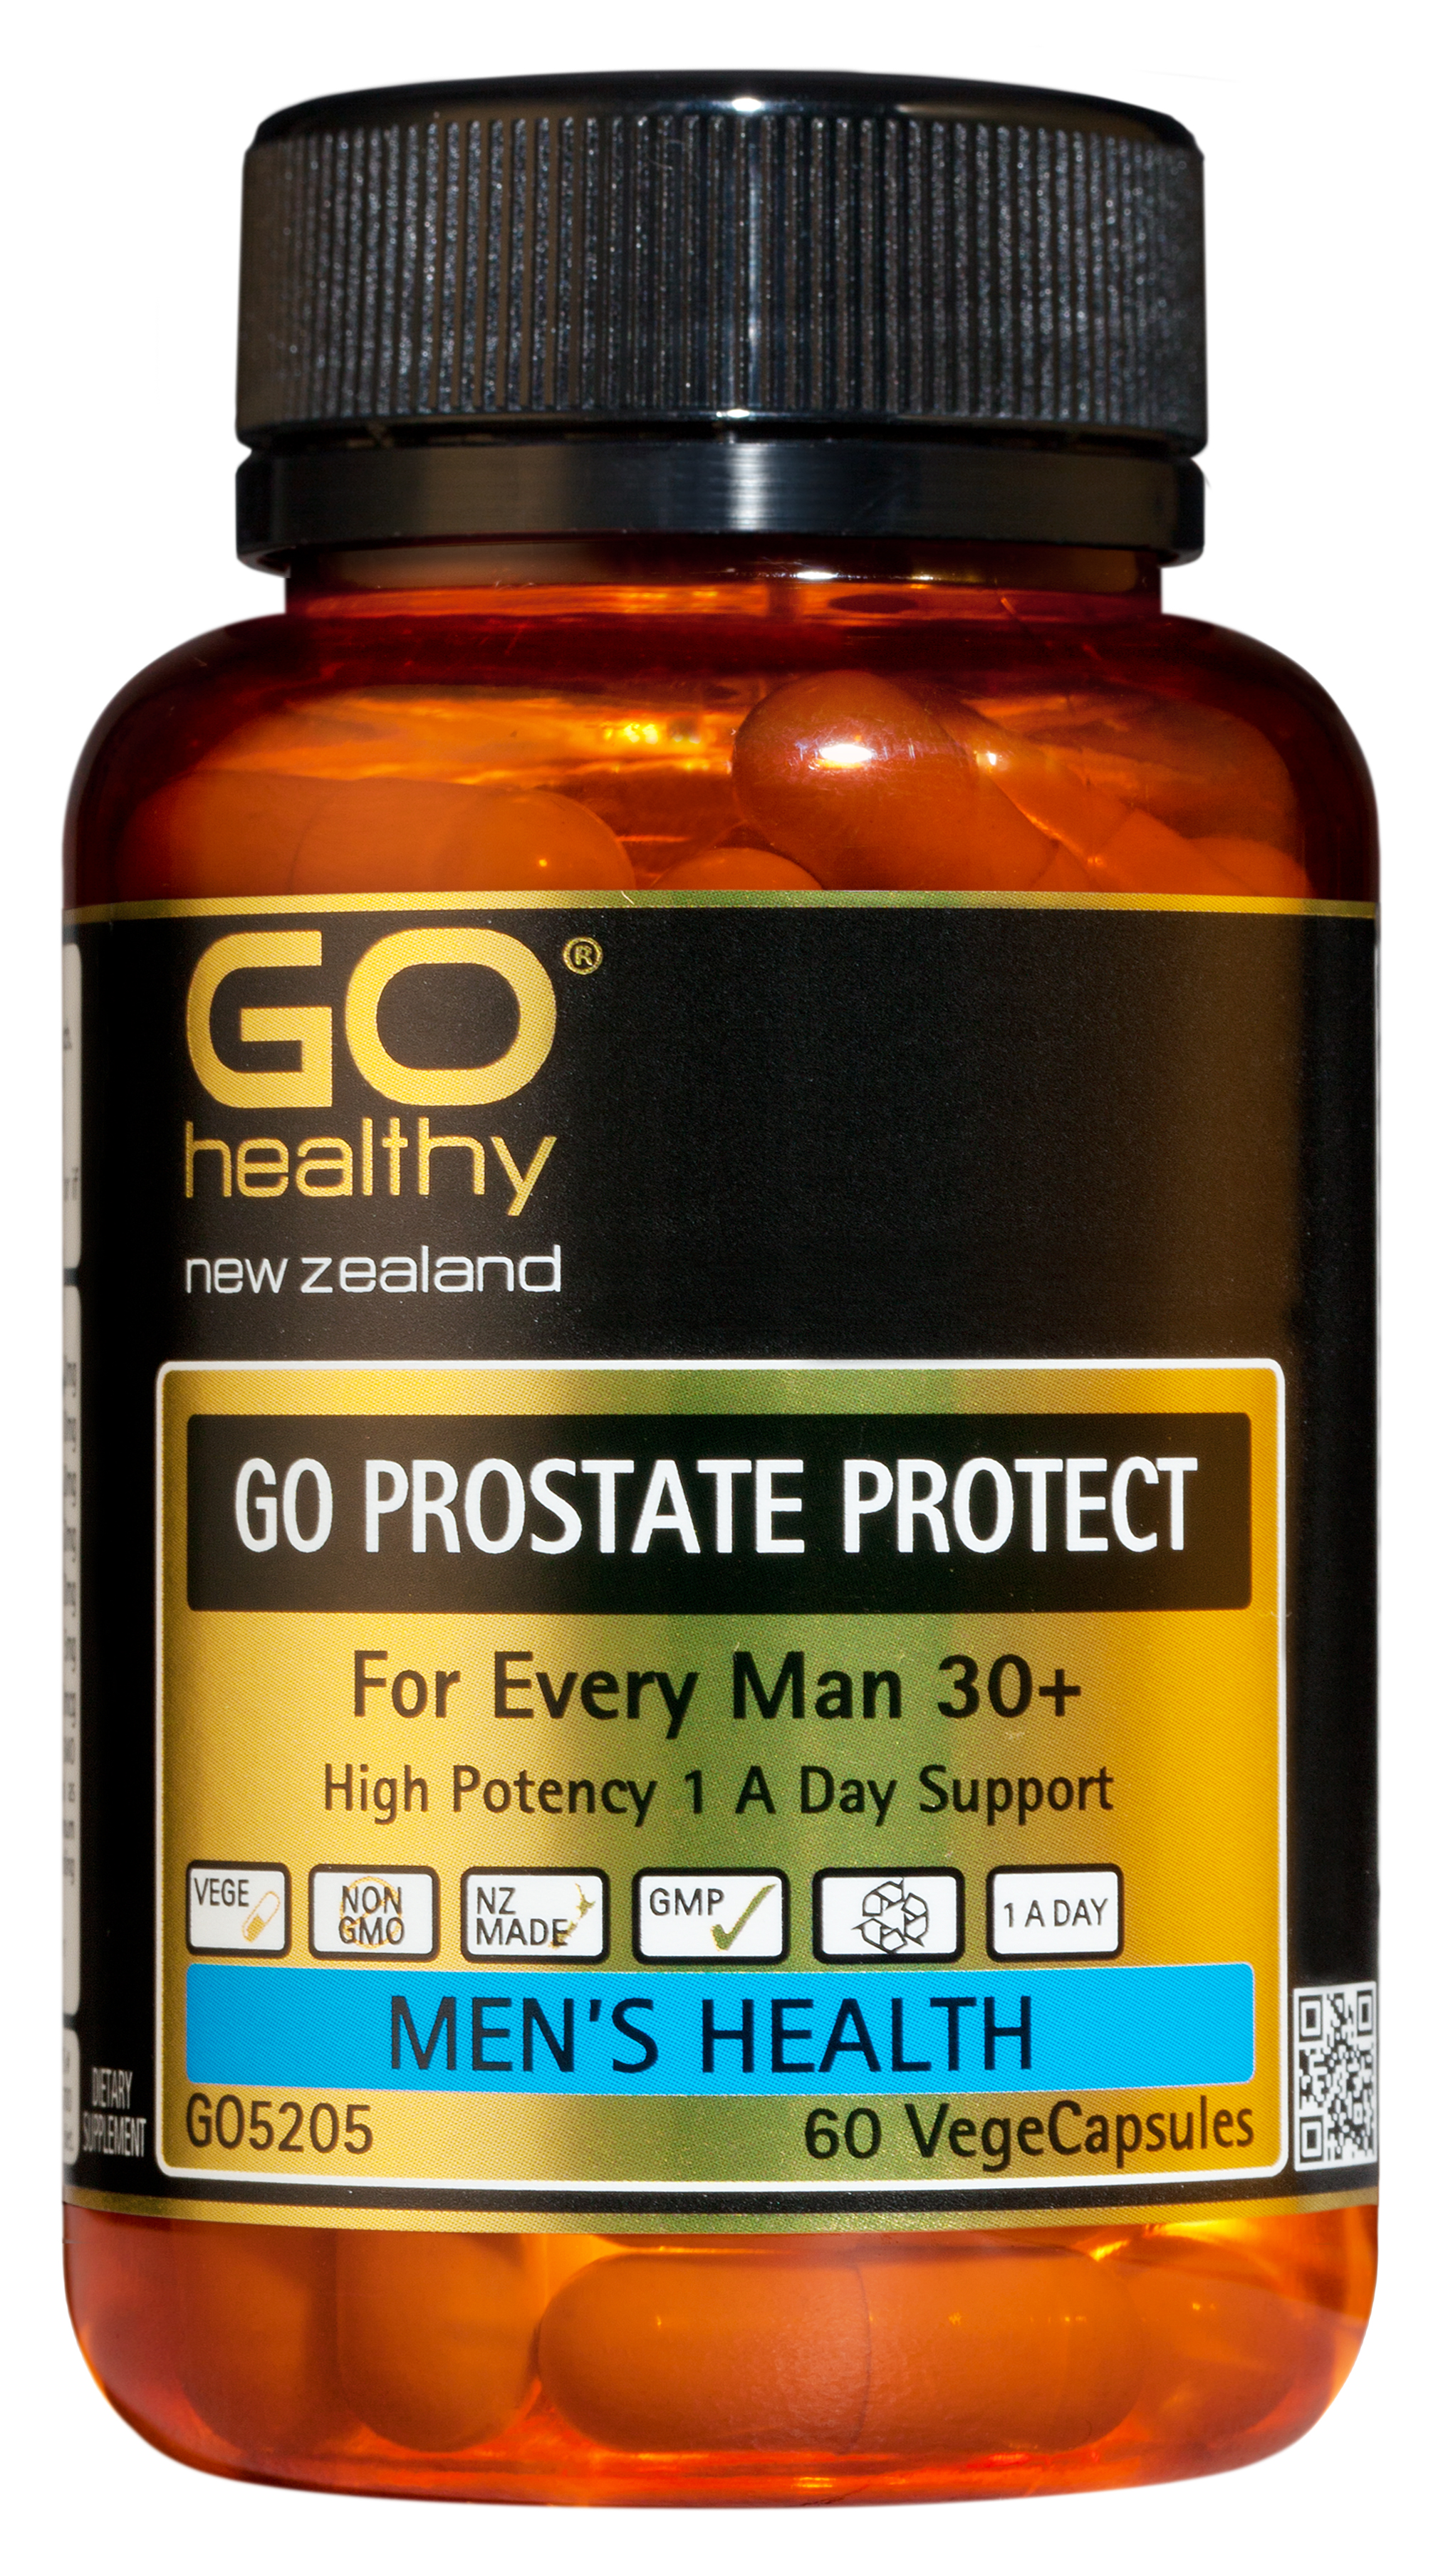 GO Healthy Prostate Protect 60 Capsules